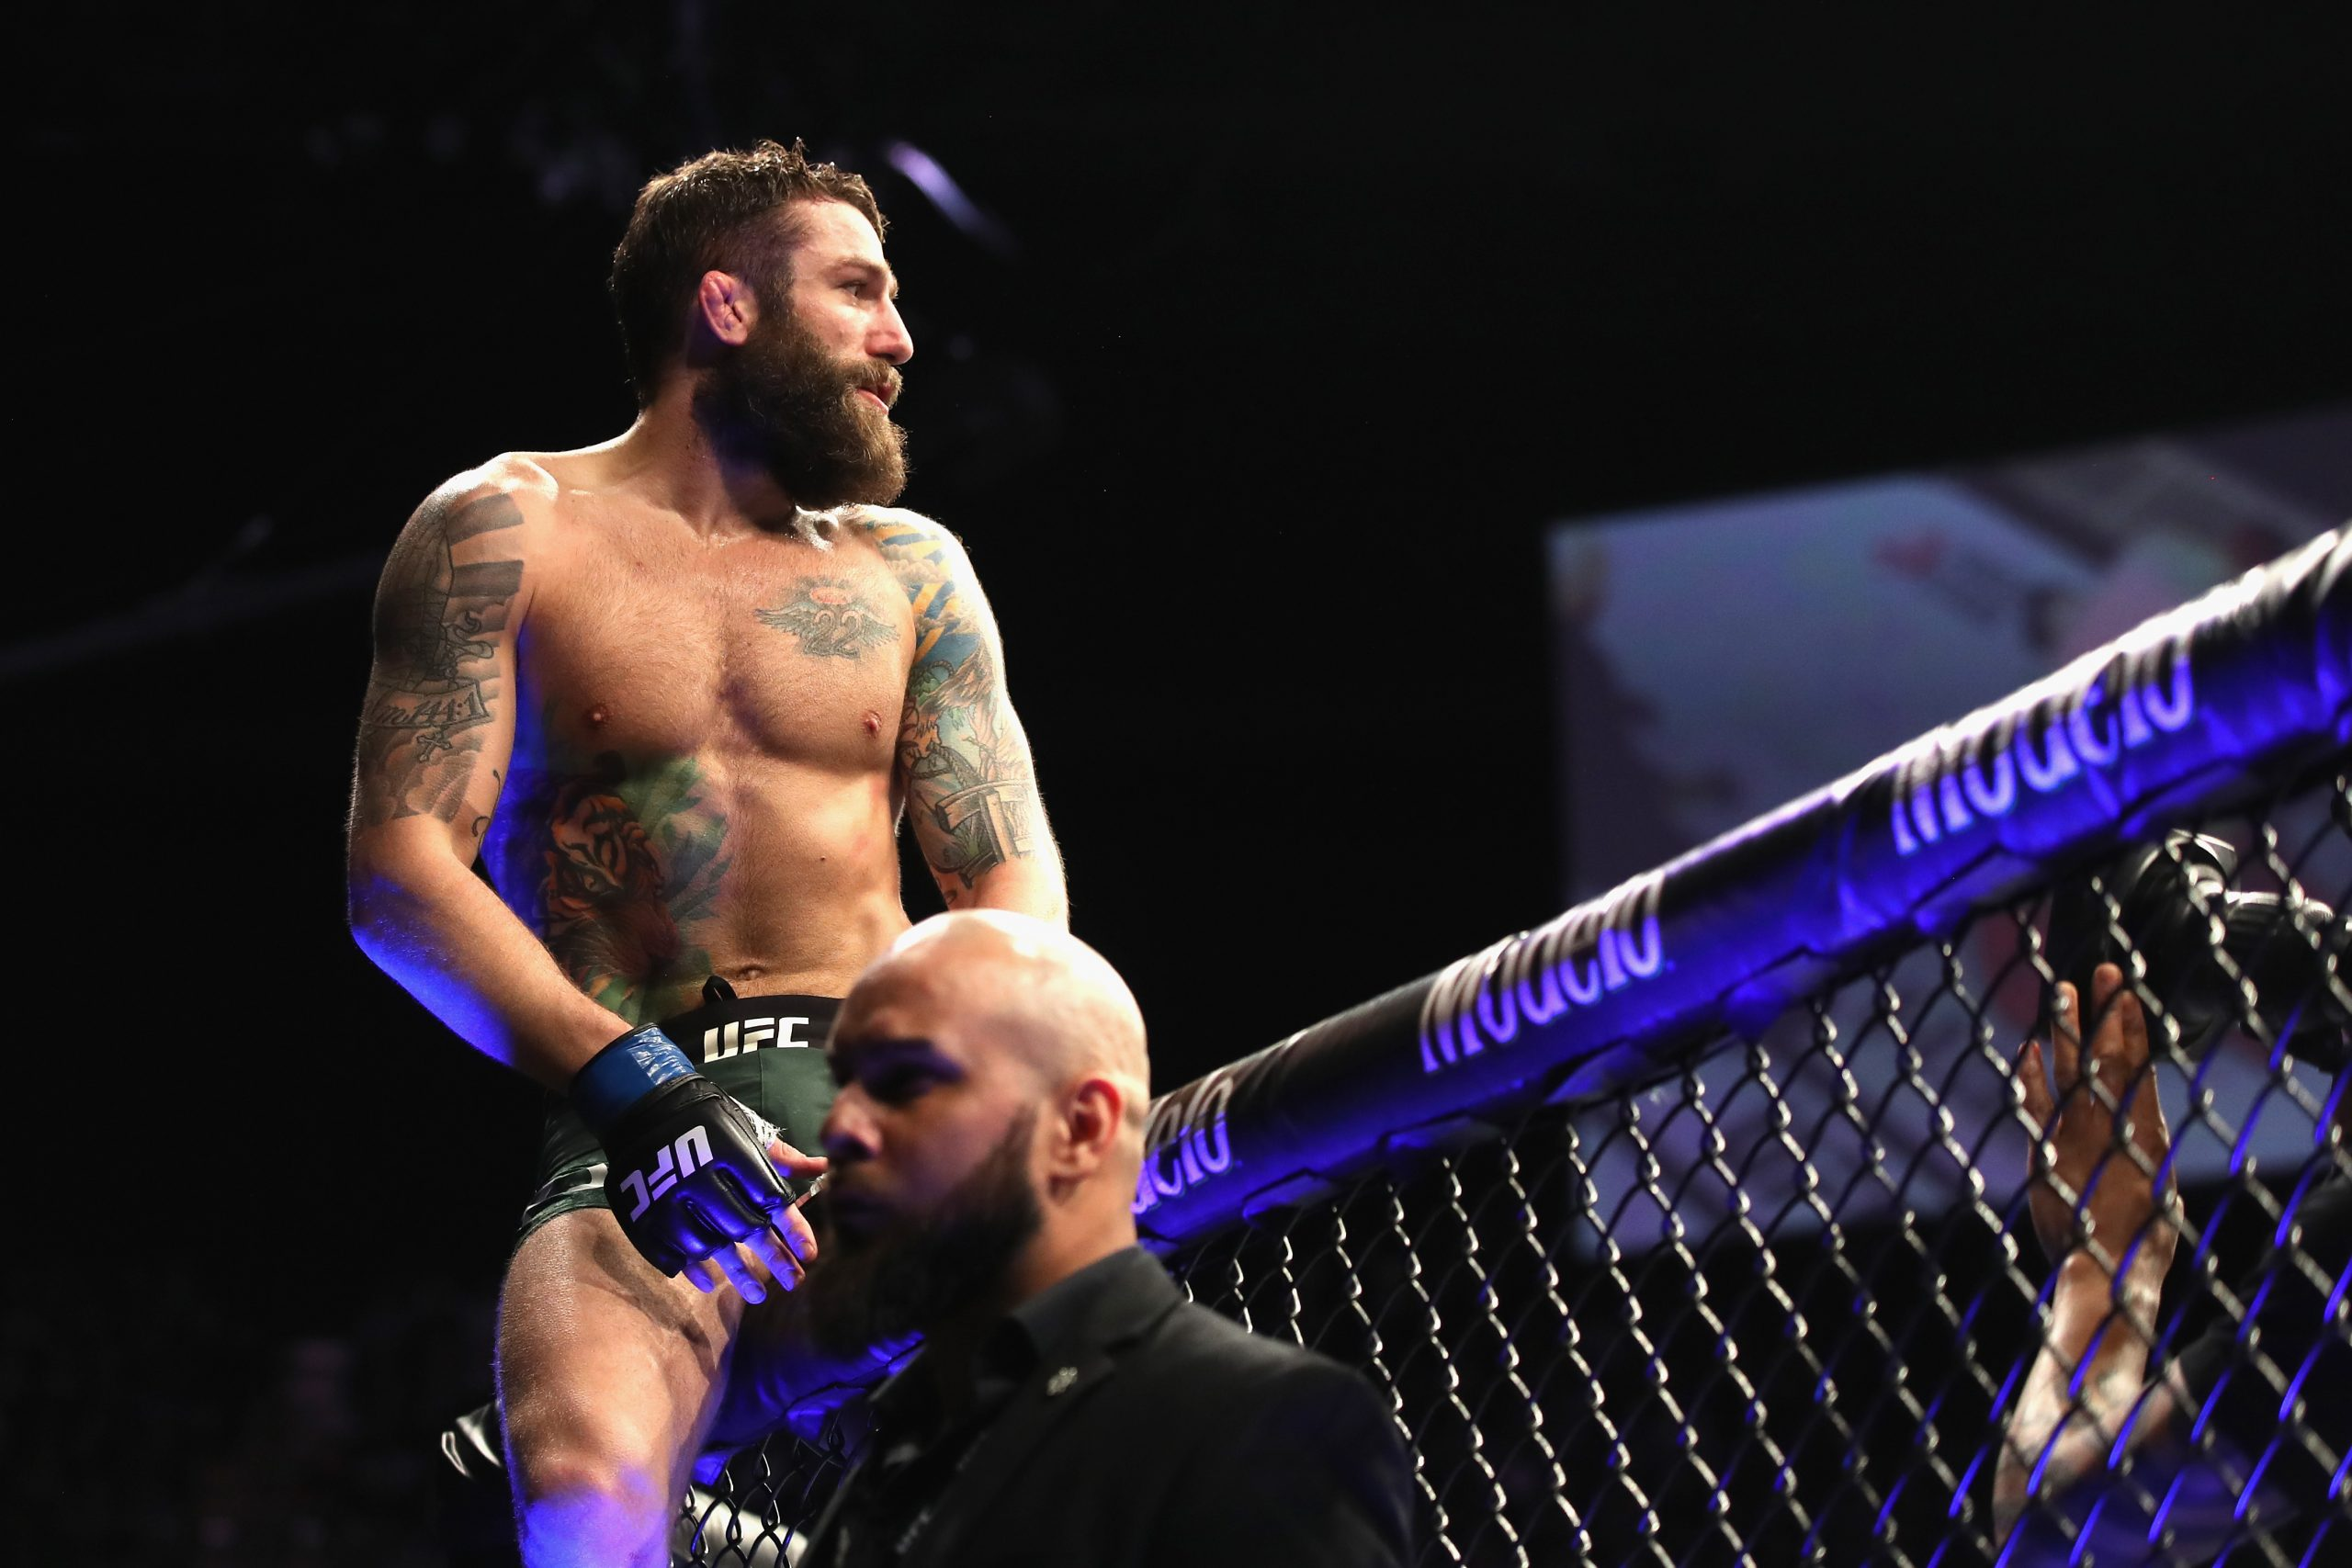 Michael Chiesa is also a welterweight UFC star